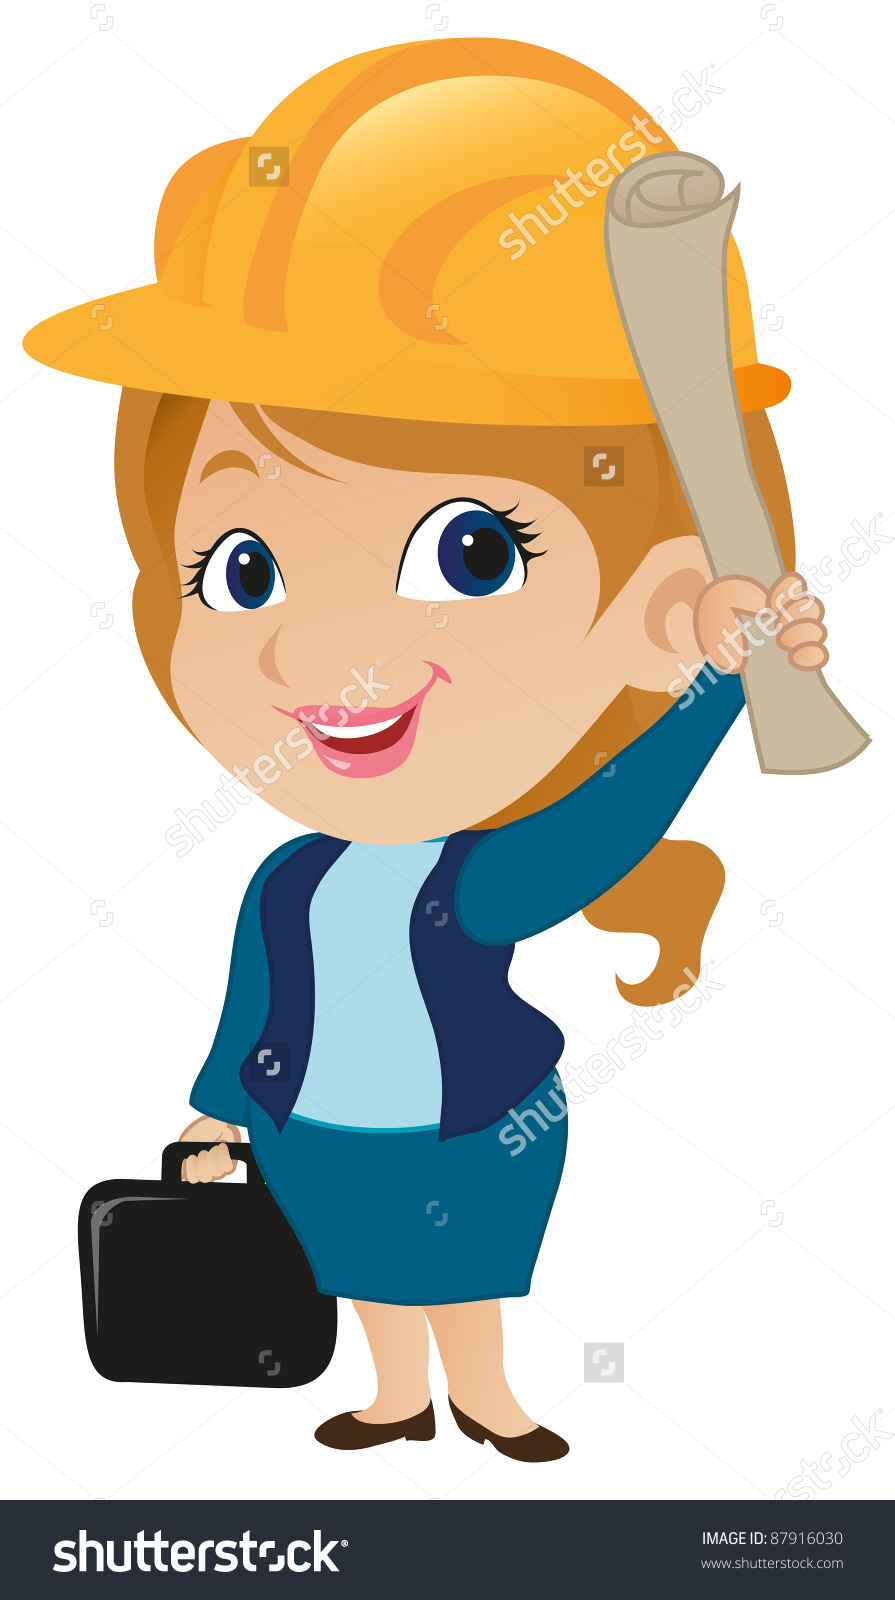 Female Architect Clipart. Save to a lightbox